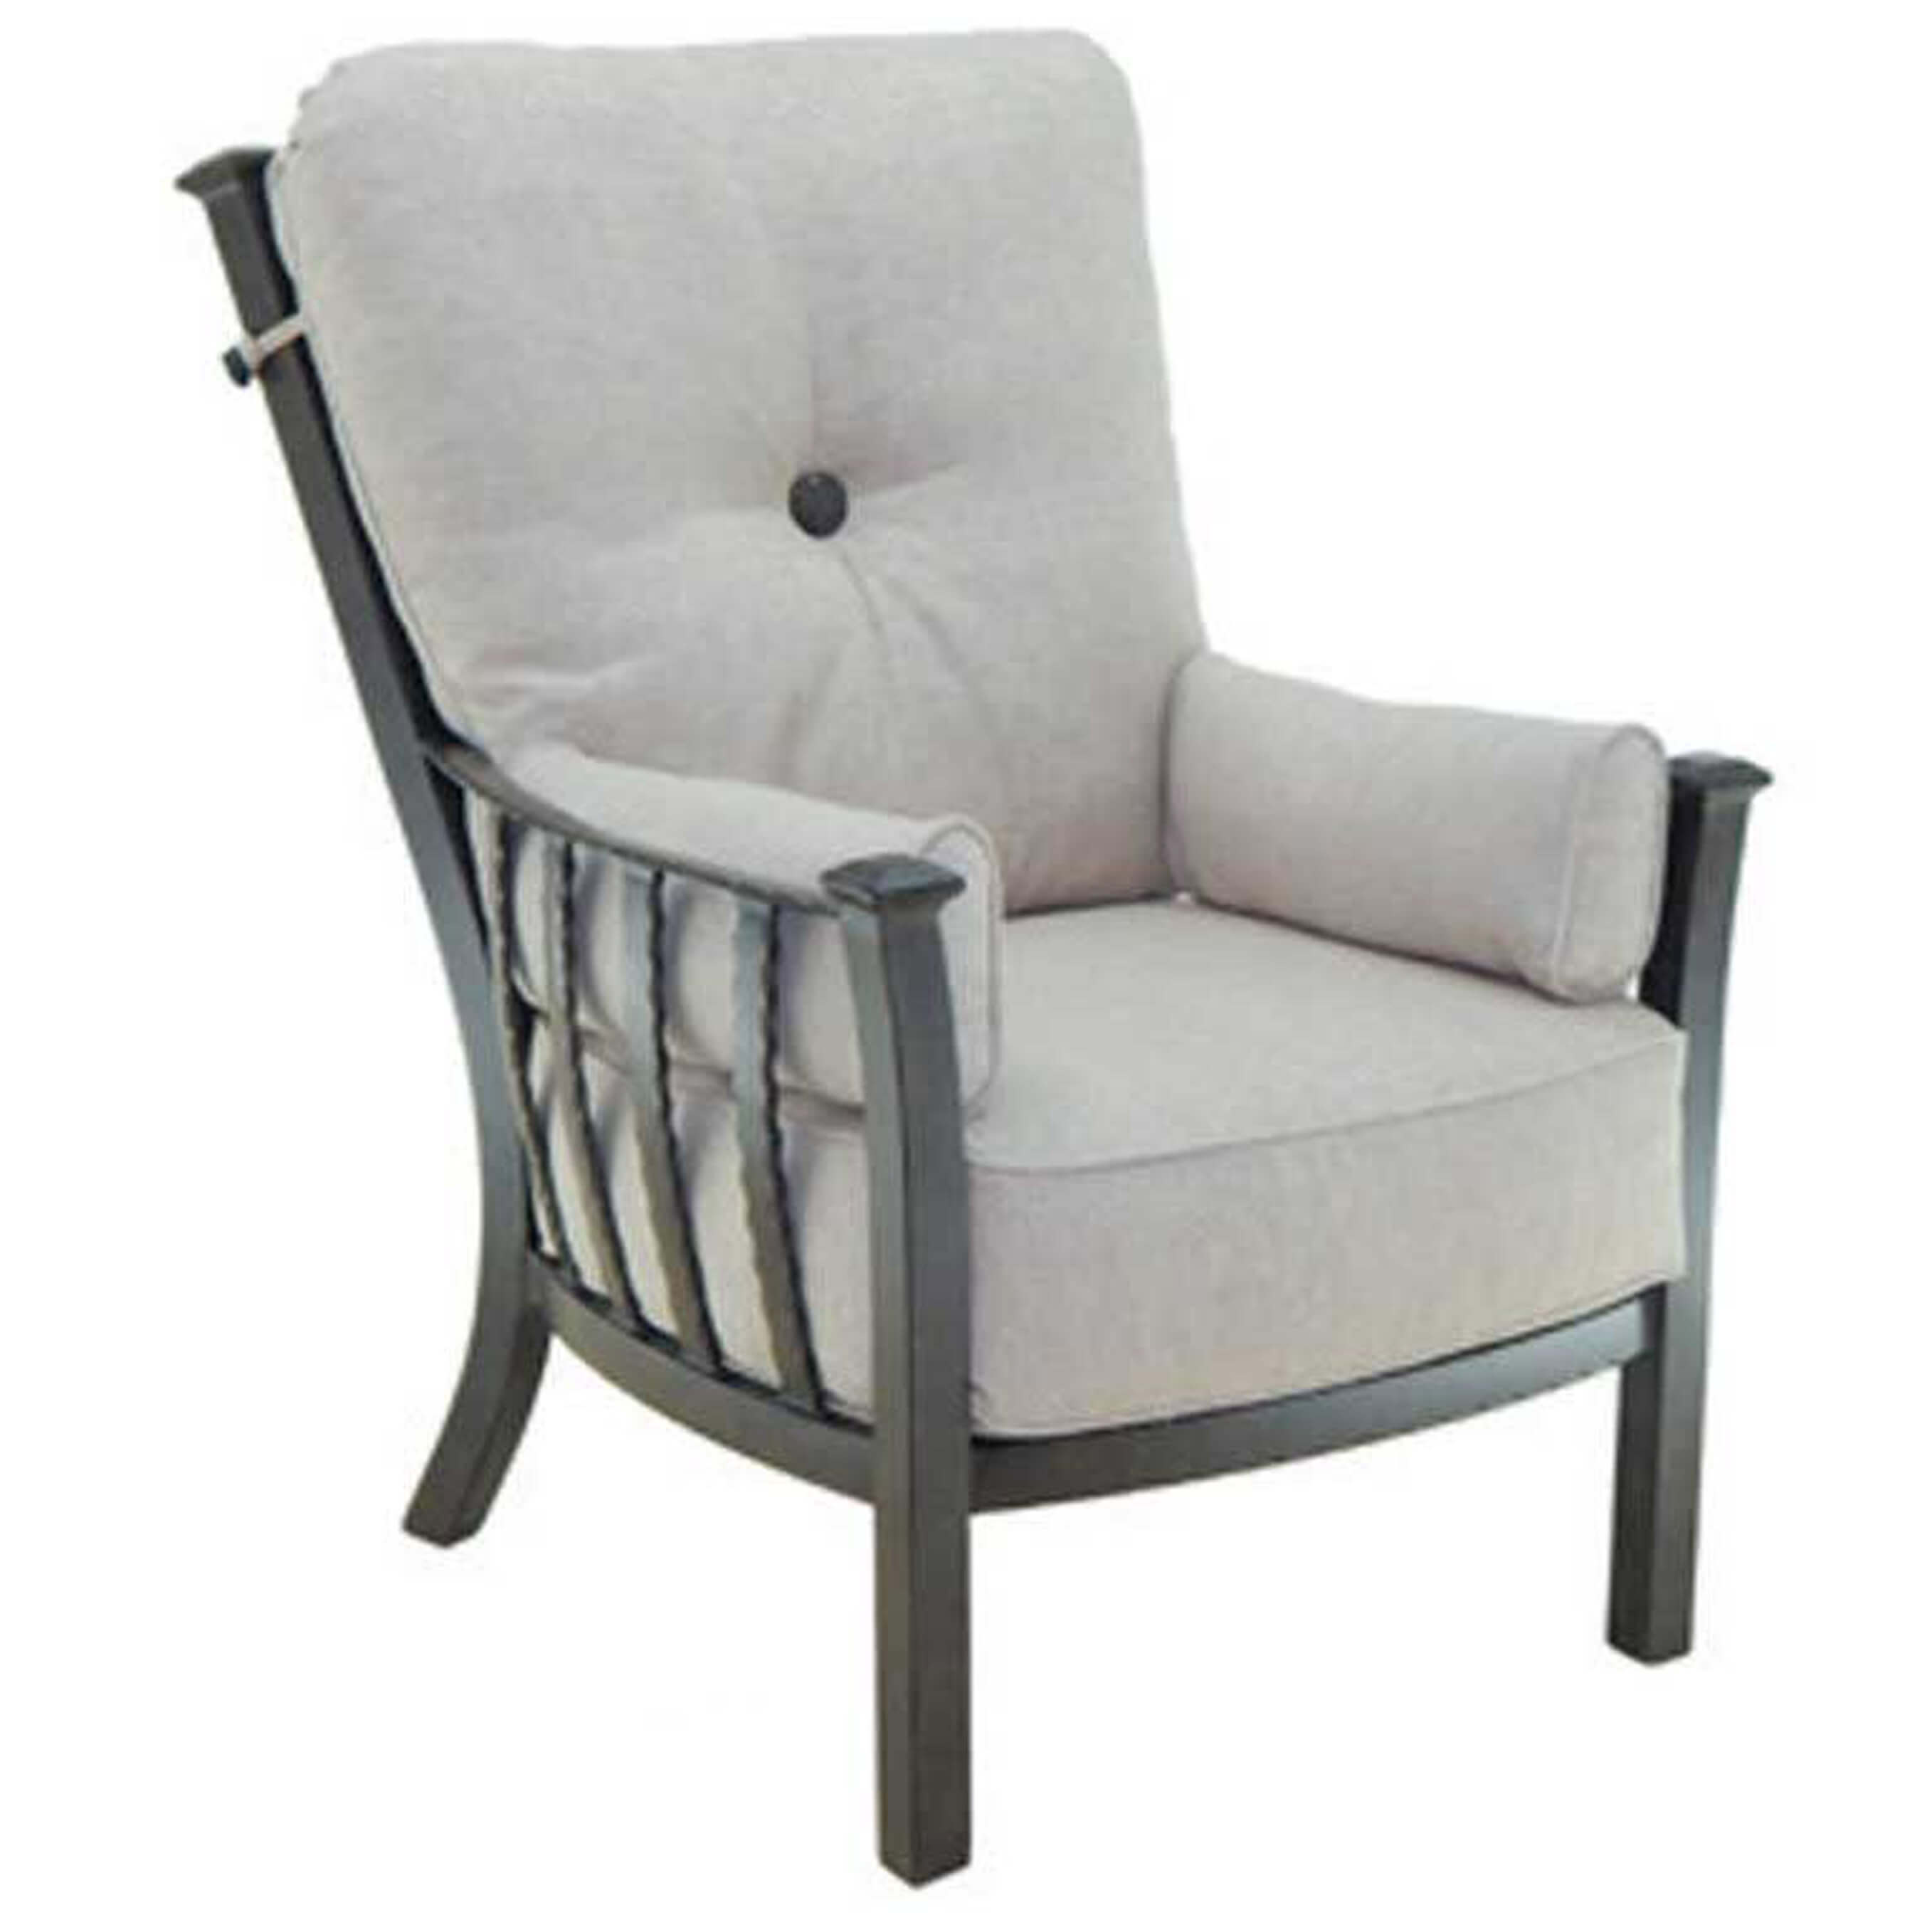 Picture of: Castelle Santa Fe Cushion High Back Lounge Chair Outdoor Furniture Sunnyland Outdoor Patio Furniture Dallas Fort Worth Tx